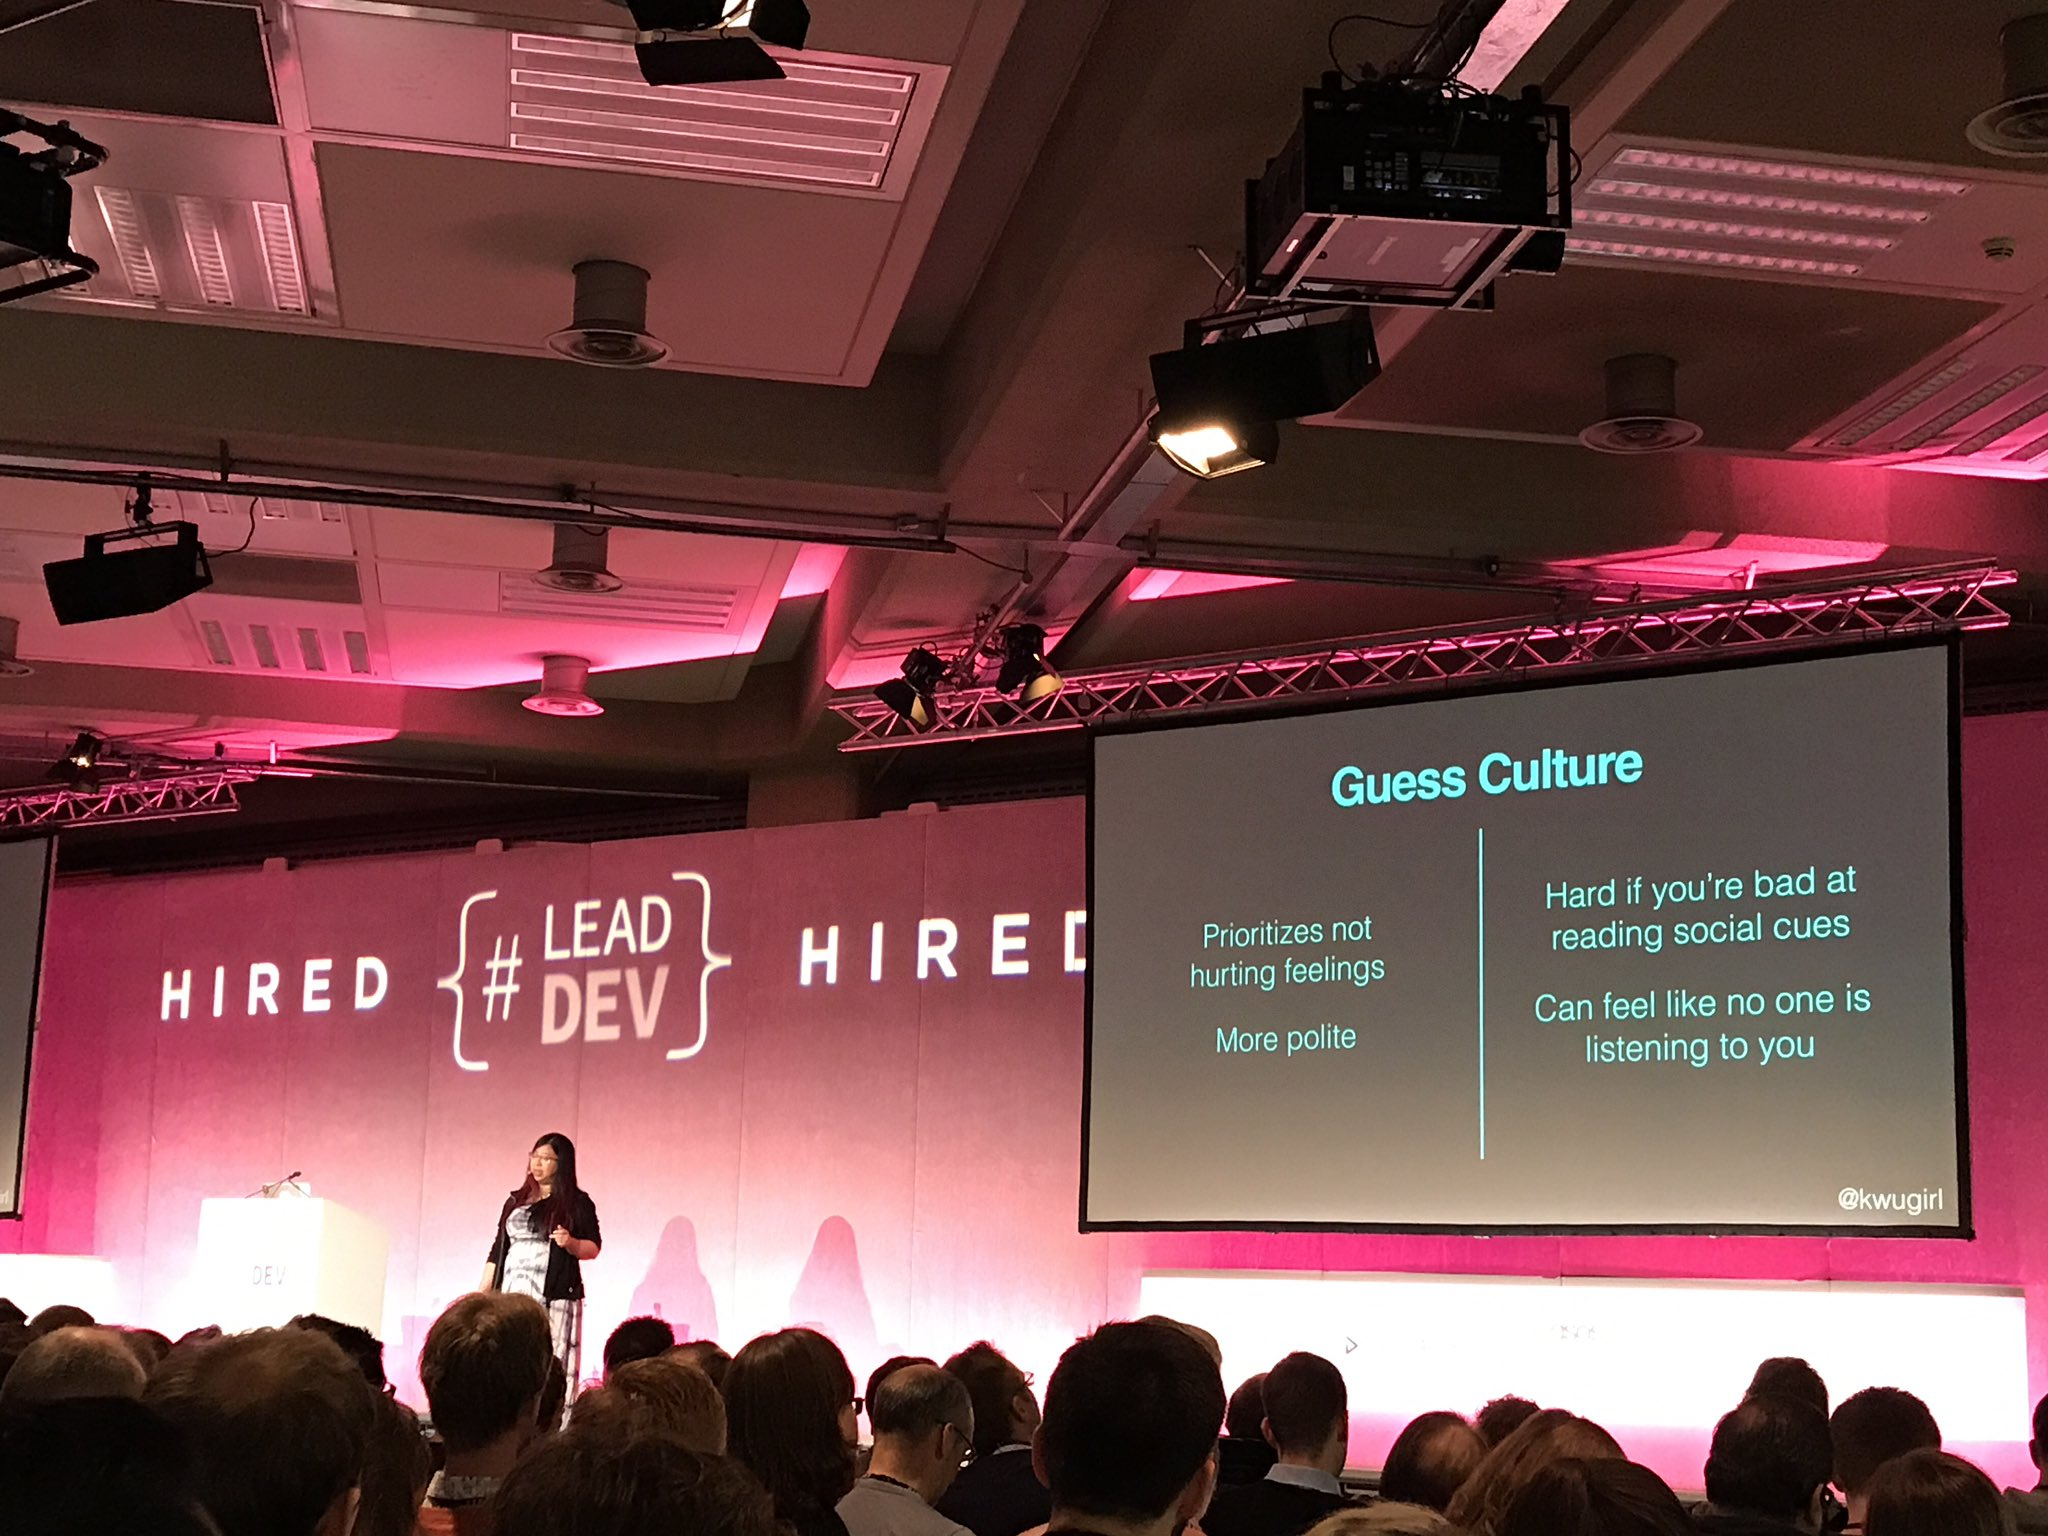 I missed the slide for pros/cons of Ask Culture, but here is @kwugirl on Guess/Offer Culture pros/cons. #LeadDev https://t.co/3sruof8Lv3